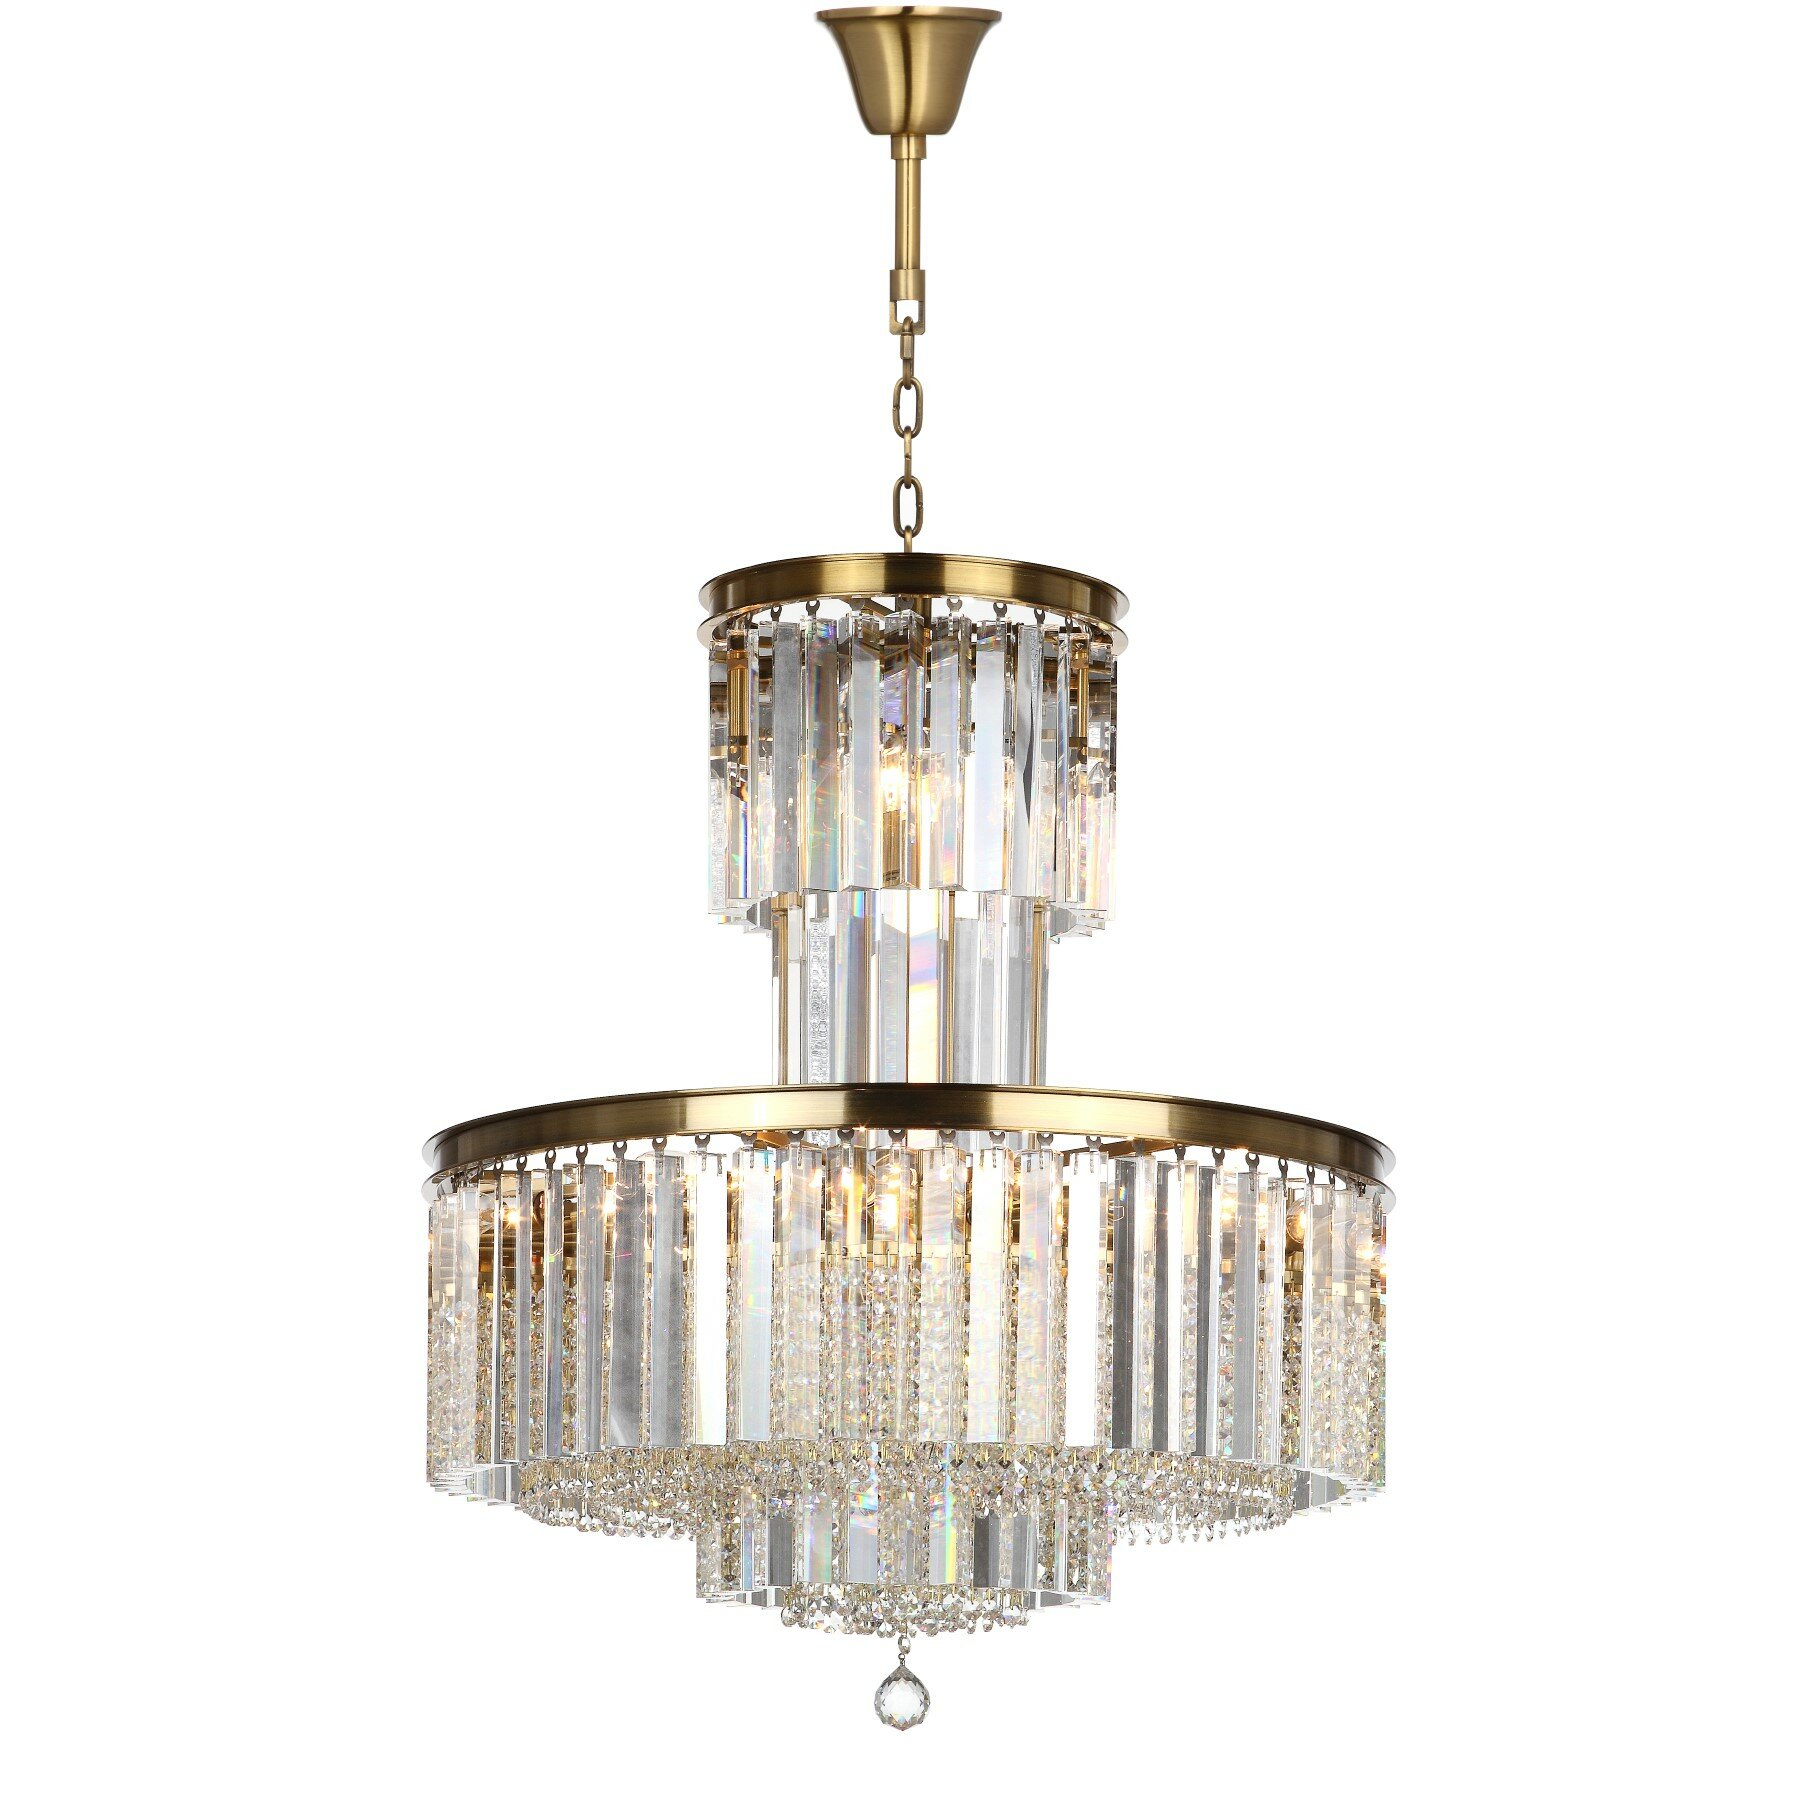 Wayfair Chandelier: Safavieh Couture Averil Crystal Chandelier